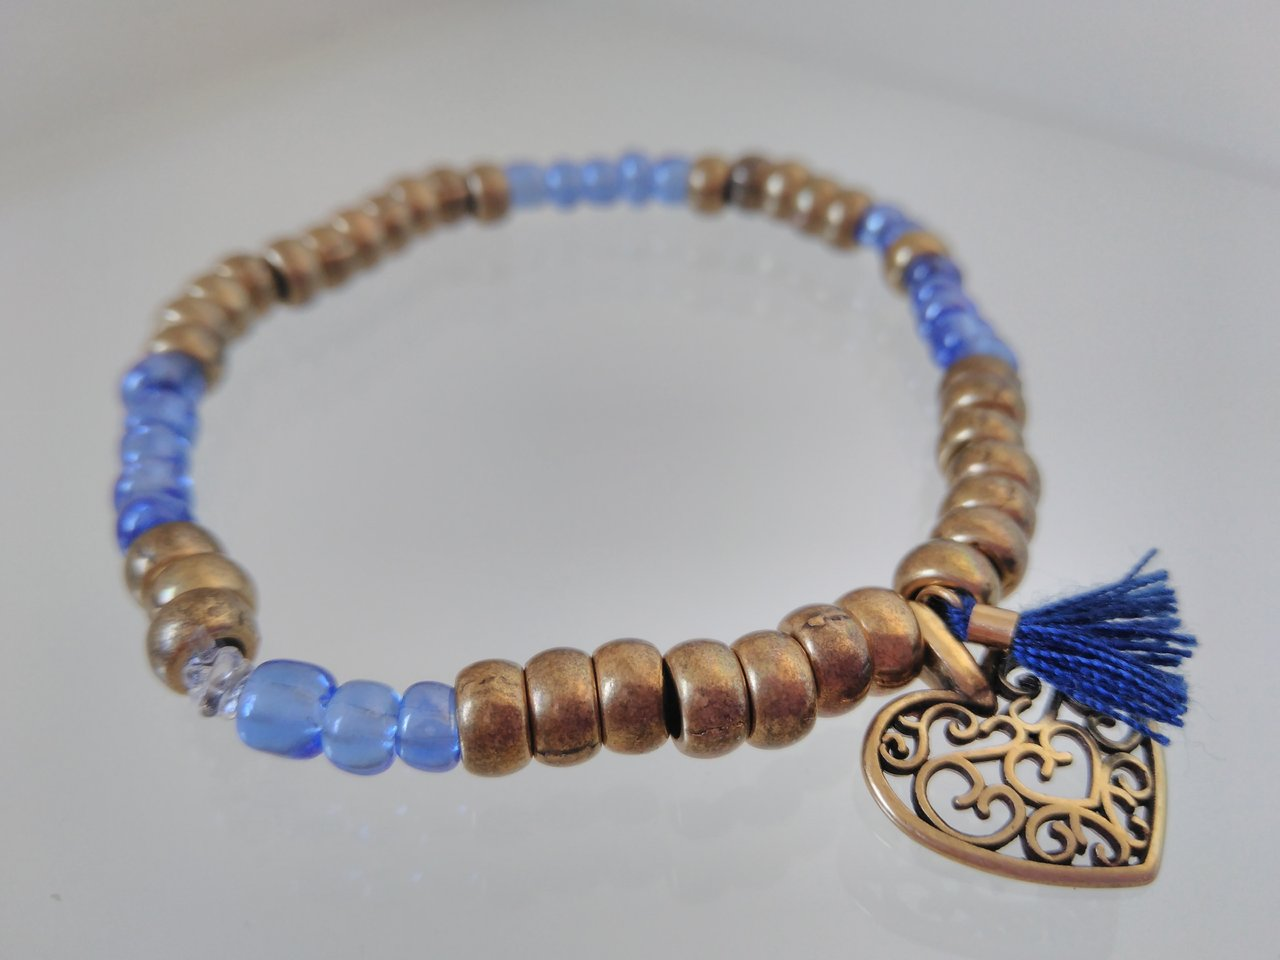 BRASS ZAMAK BEADS BRACELET WITH A HEART